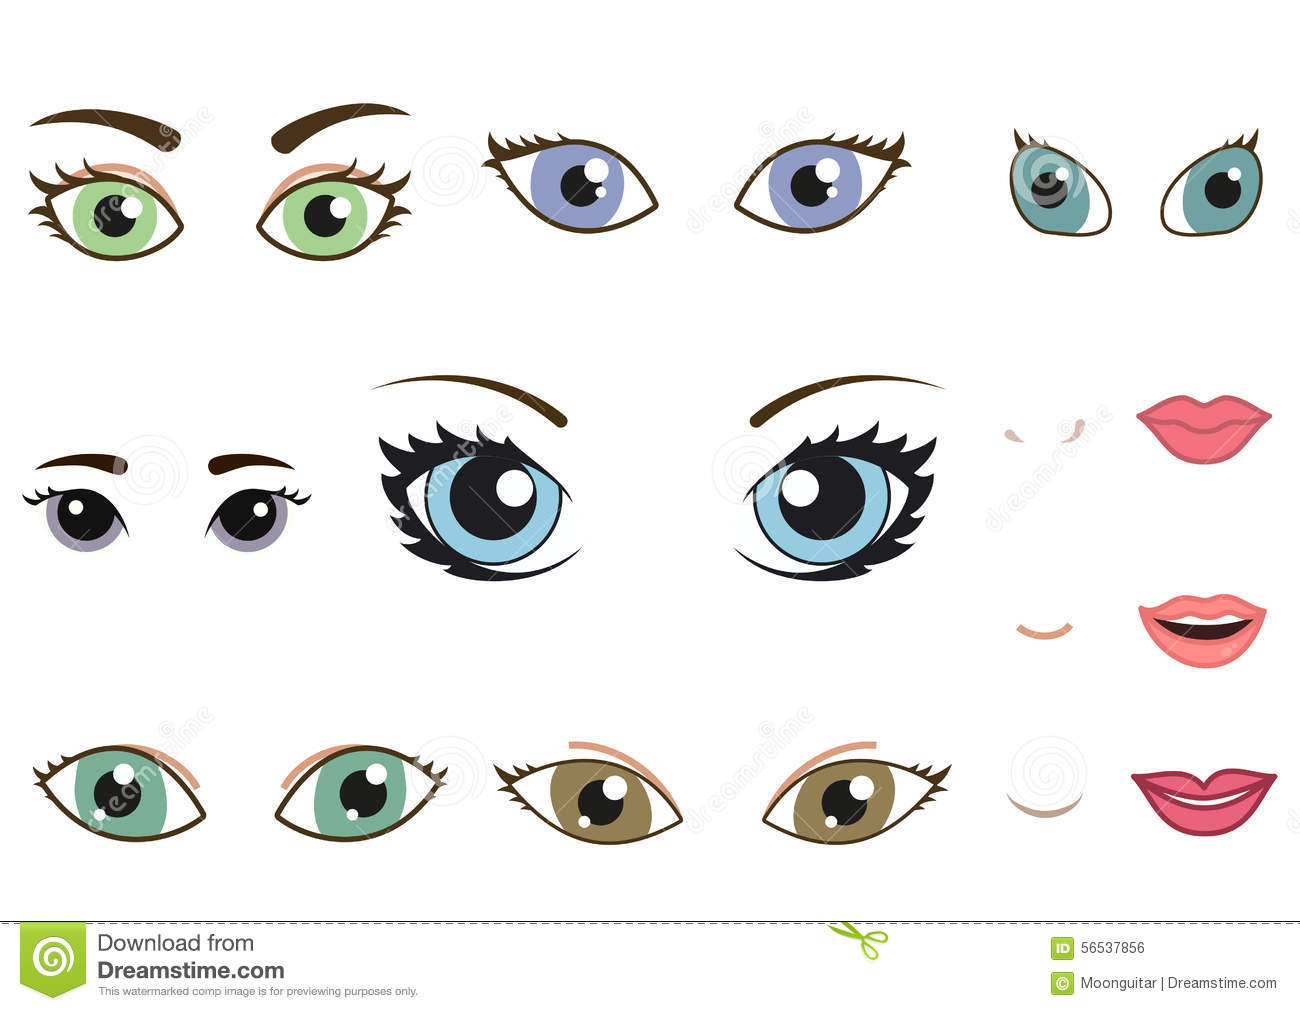 Single Gold Star Cartoon Sticking Out Tongue Emoji also 1084879 Types Of Woman Eyes  Eye Shapes also Smiling Cartoon Faces moreover Exclusive Preview French Manga Series Last Man Deb additionally Production Line Clipart. on cartoon eyebrows